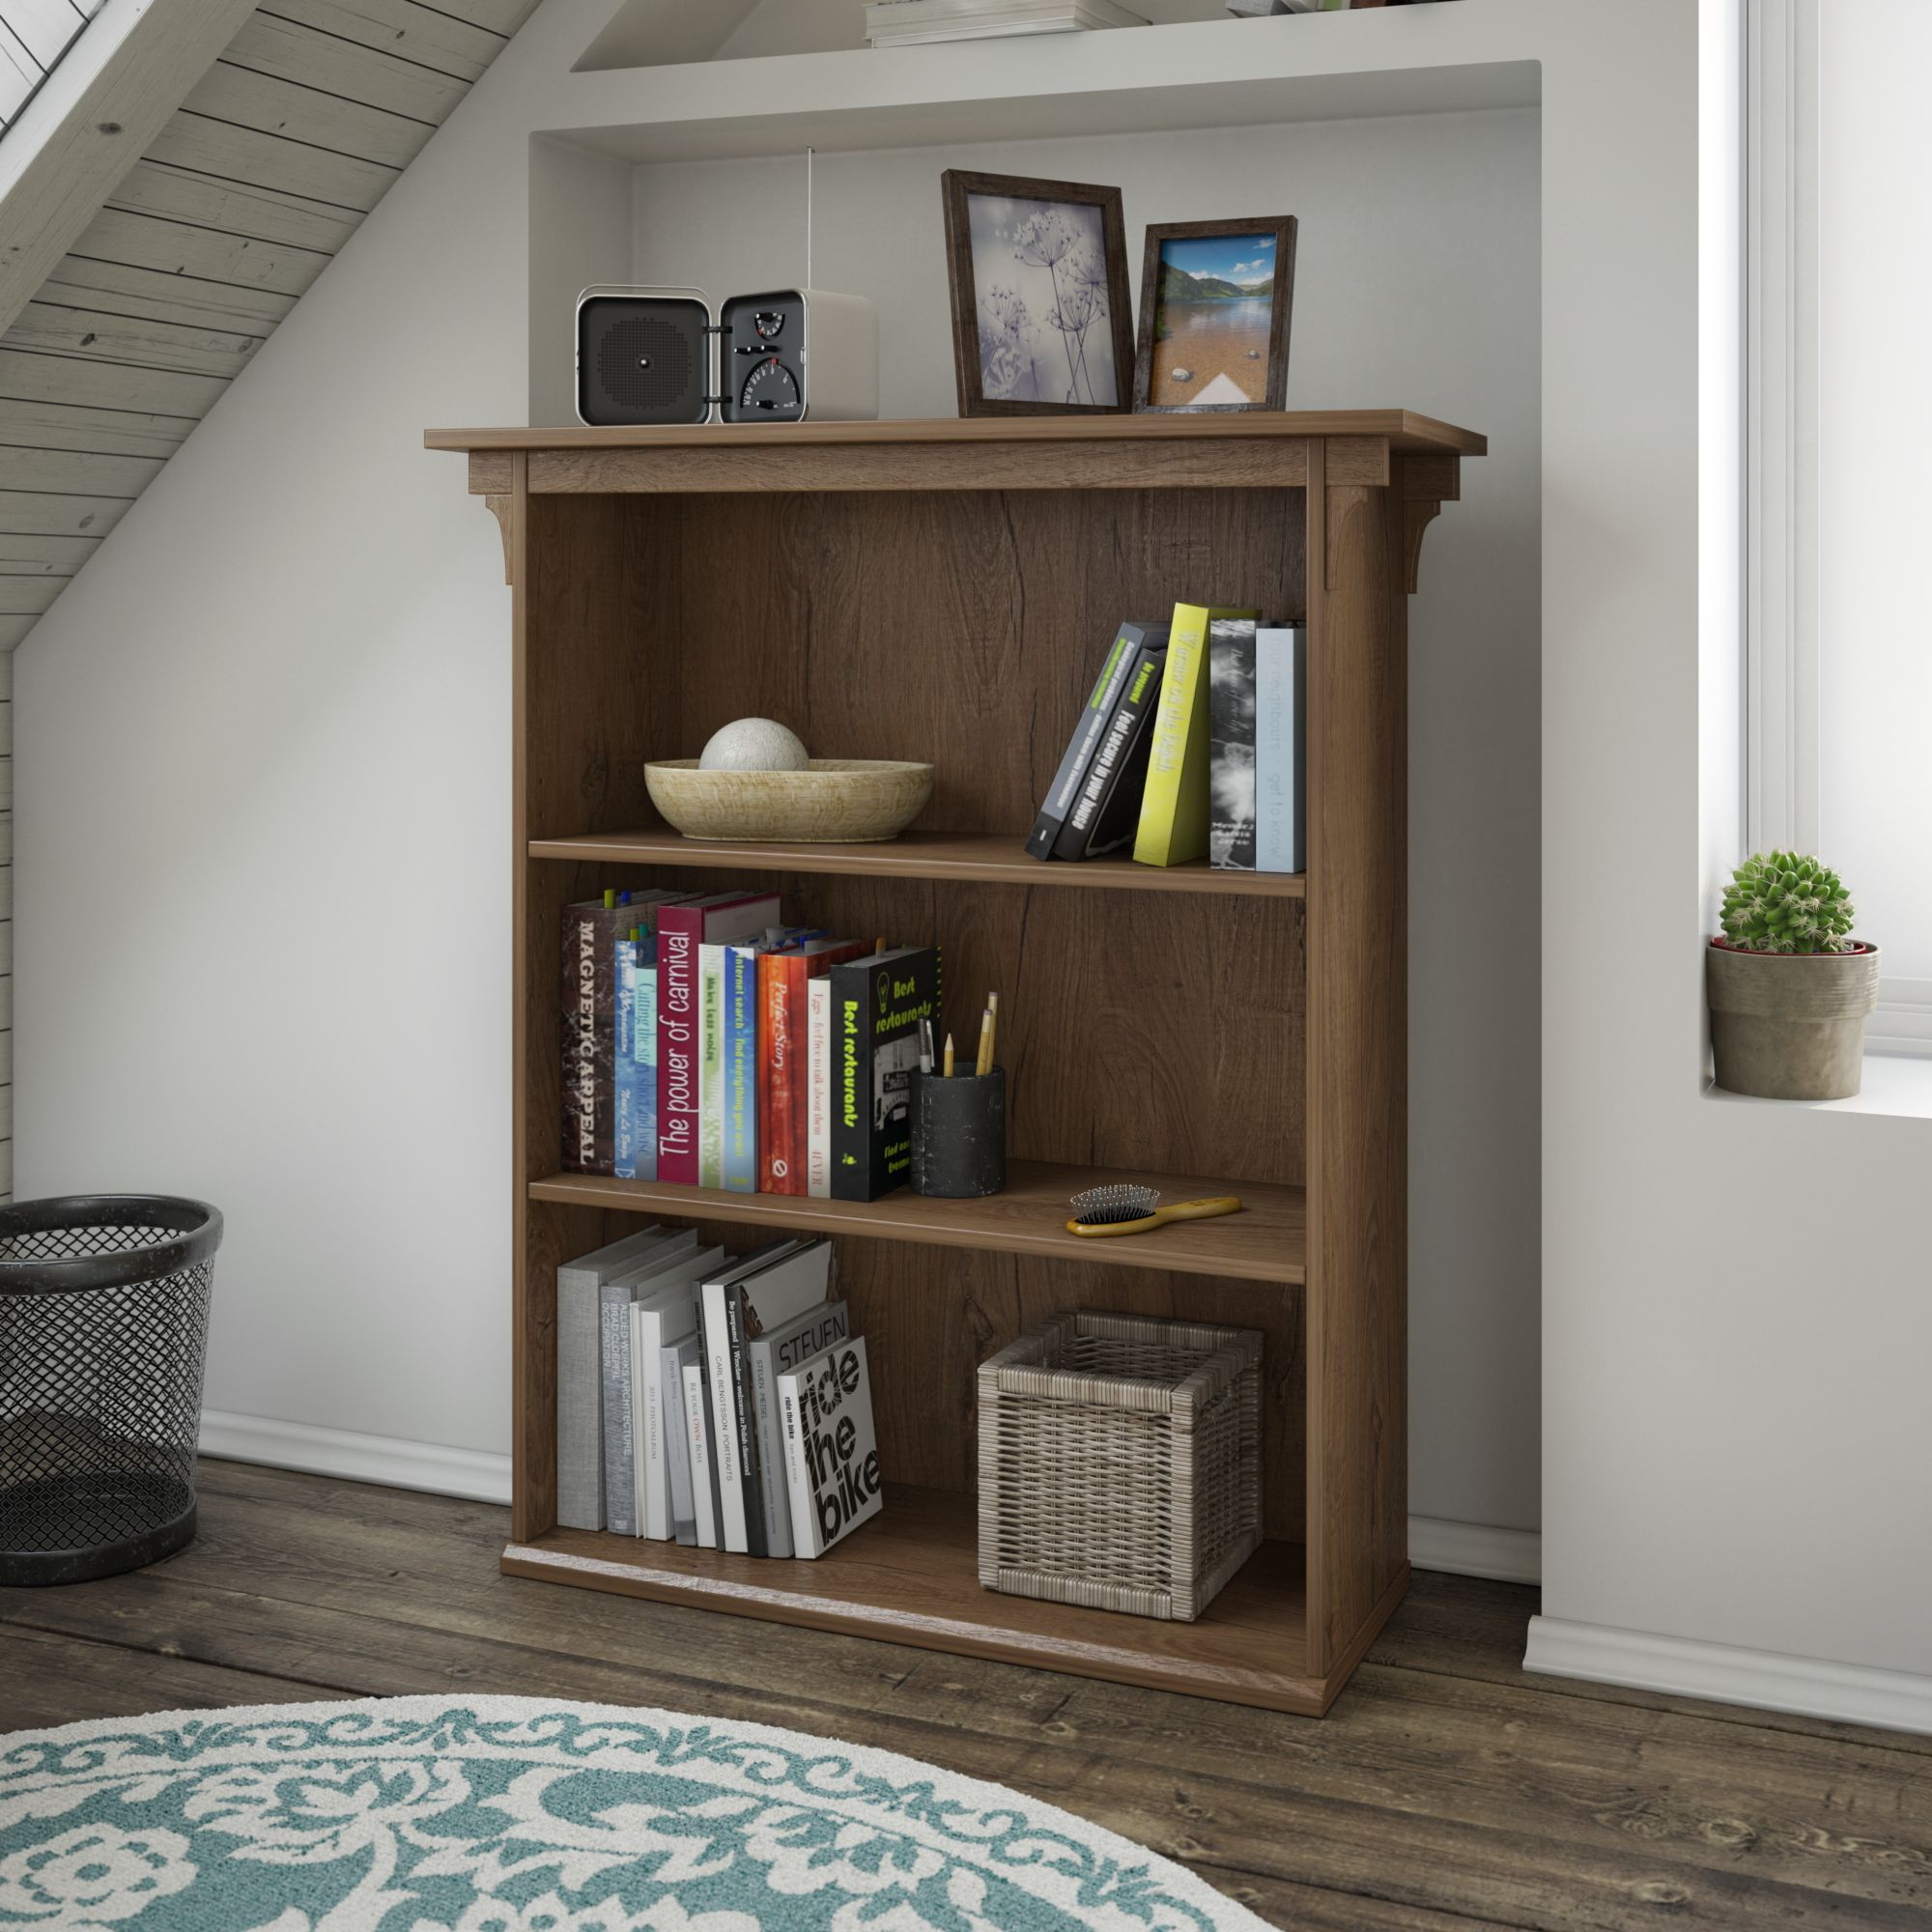 Bush Furniture Mission Creek Collection 3 Shelf Bookcase in Rustic Brown